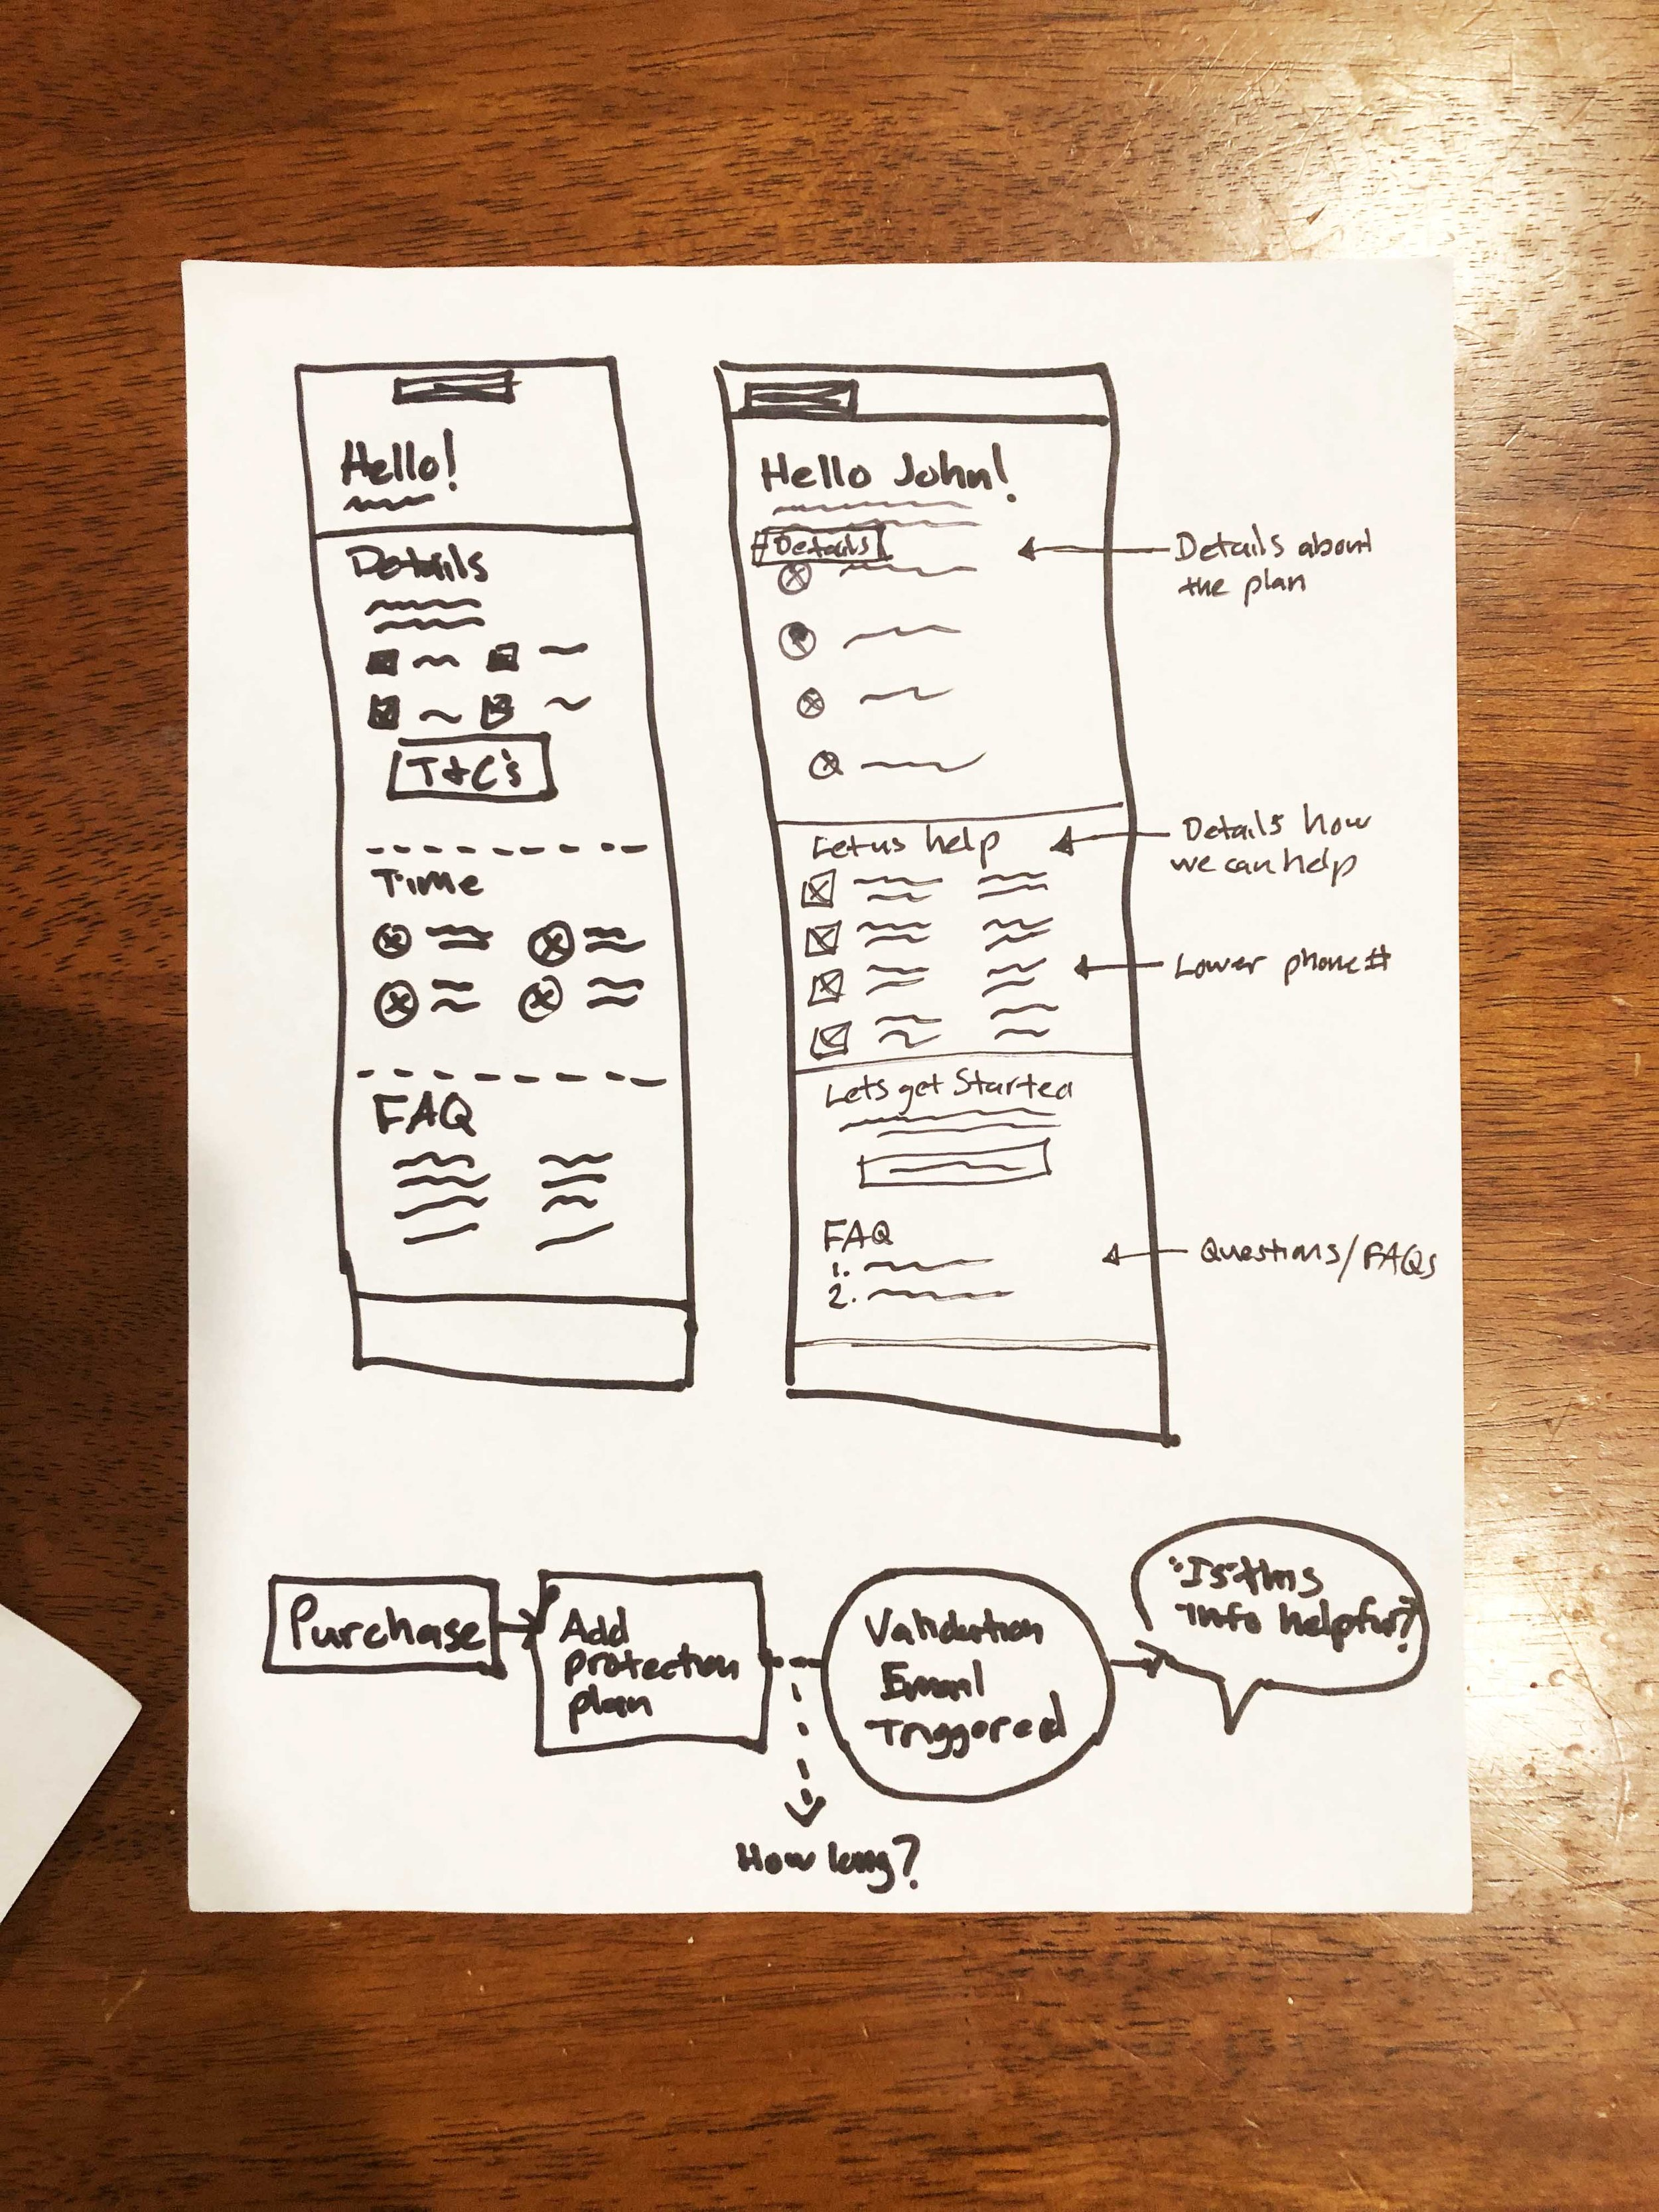 Sketches of an updated simple, clean email design